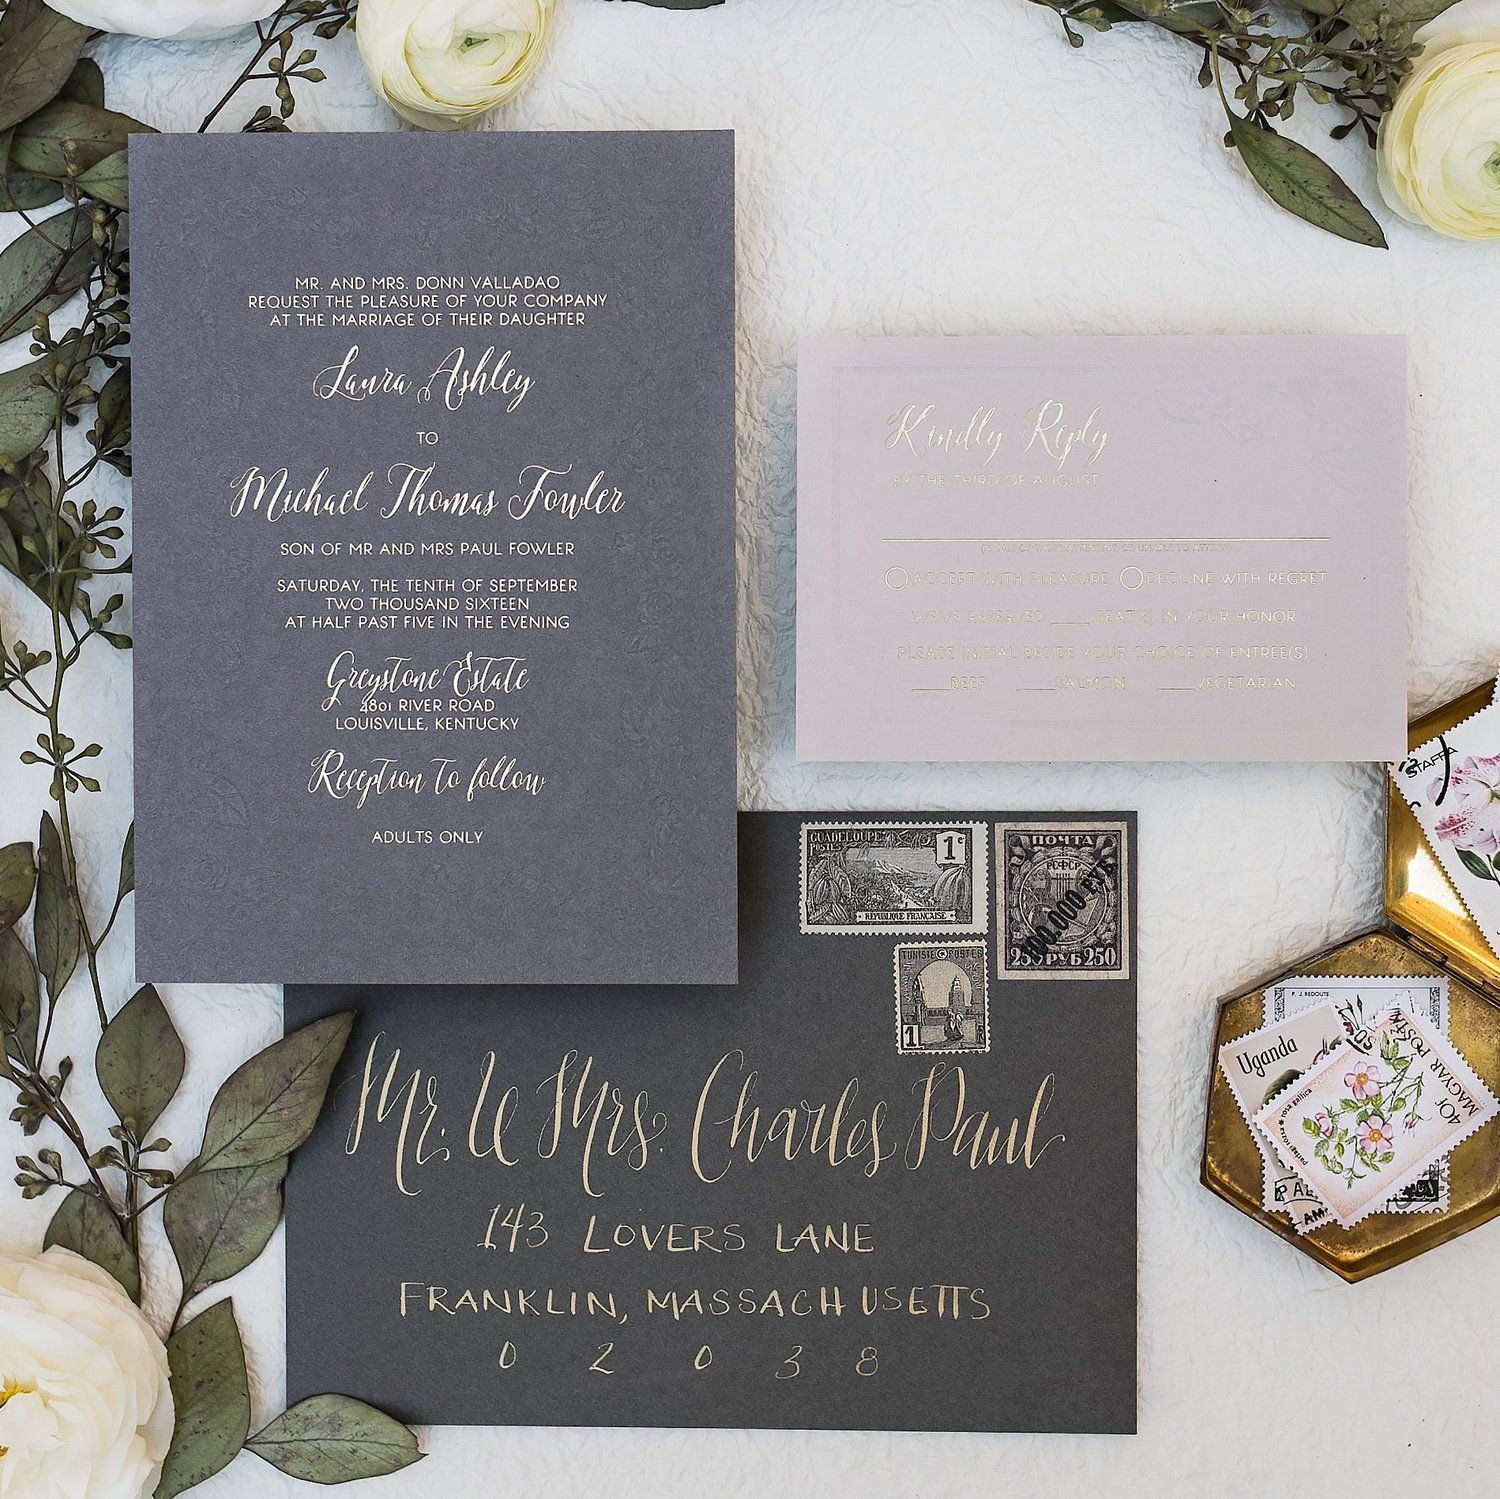 how to emboss wedding invitations diy%0A Floral deboss embossed wedding invitations wit gold foil  grey and gold wedding  invites  debossed